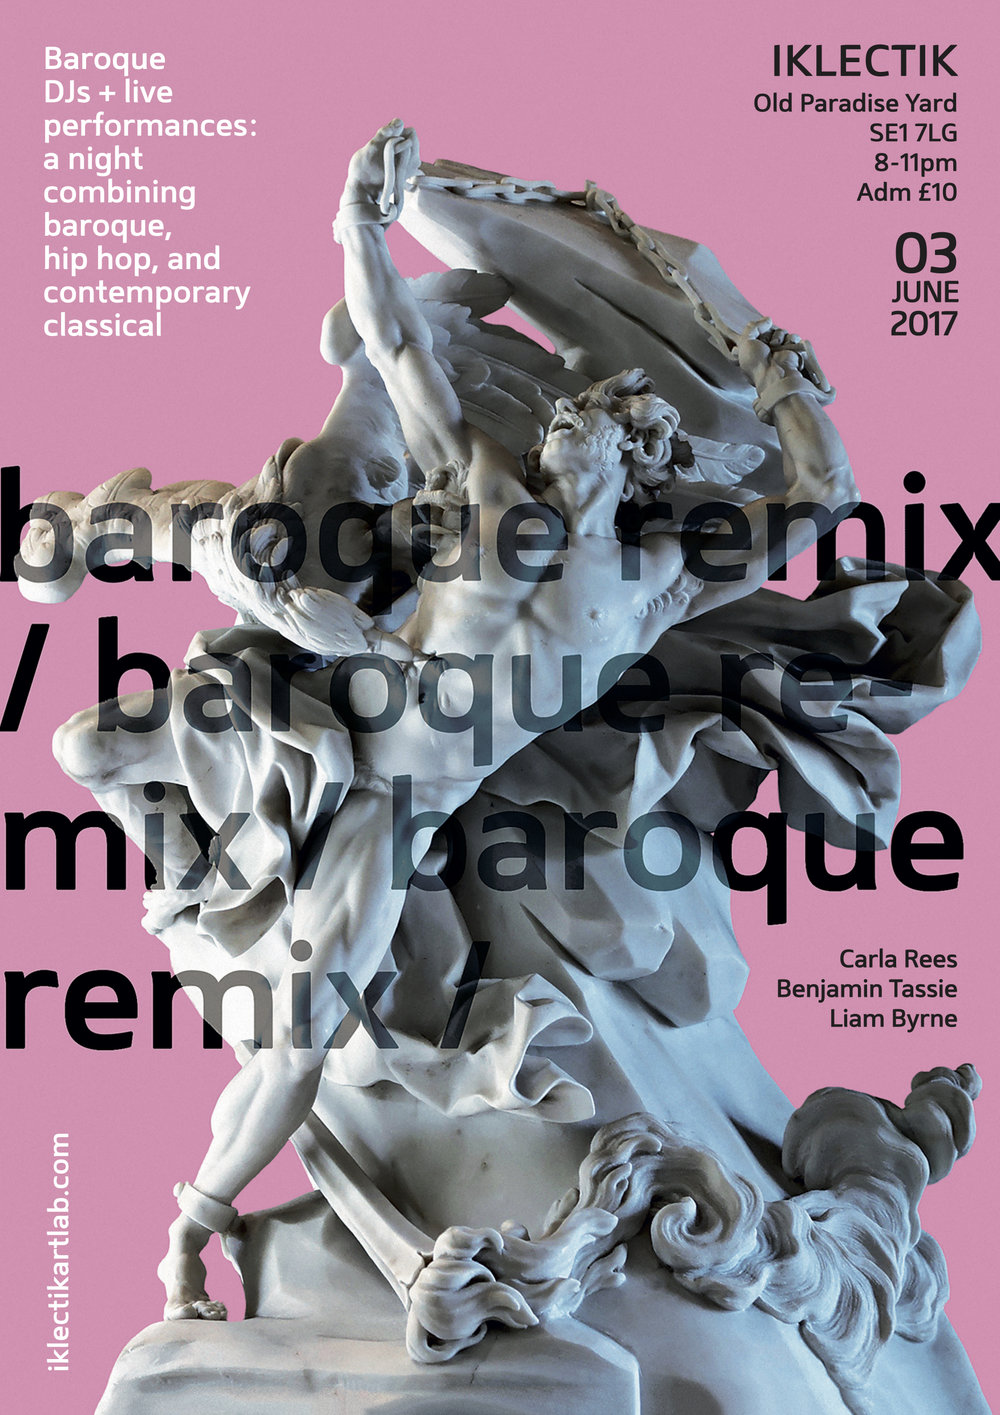 - Baroque Remixes and live performances at IKLECTIK in a club night combining Baroque with hip hop, R&B and contemporary classical music.